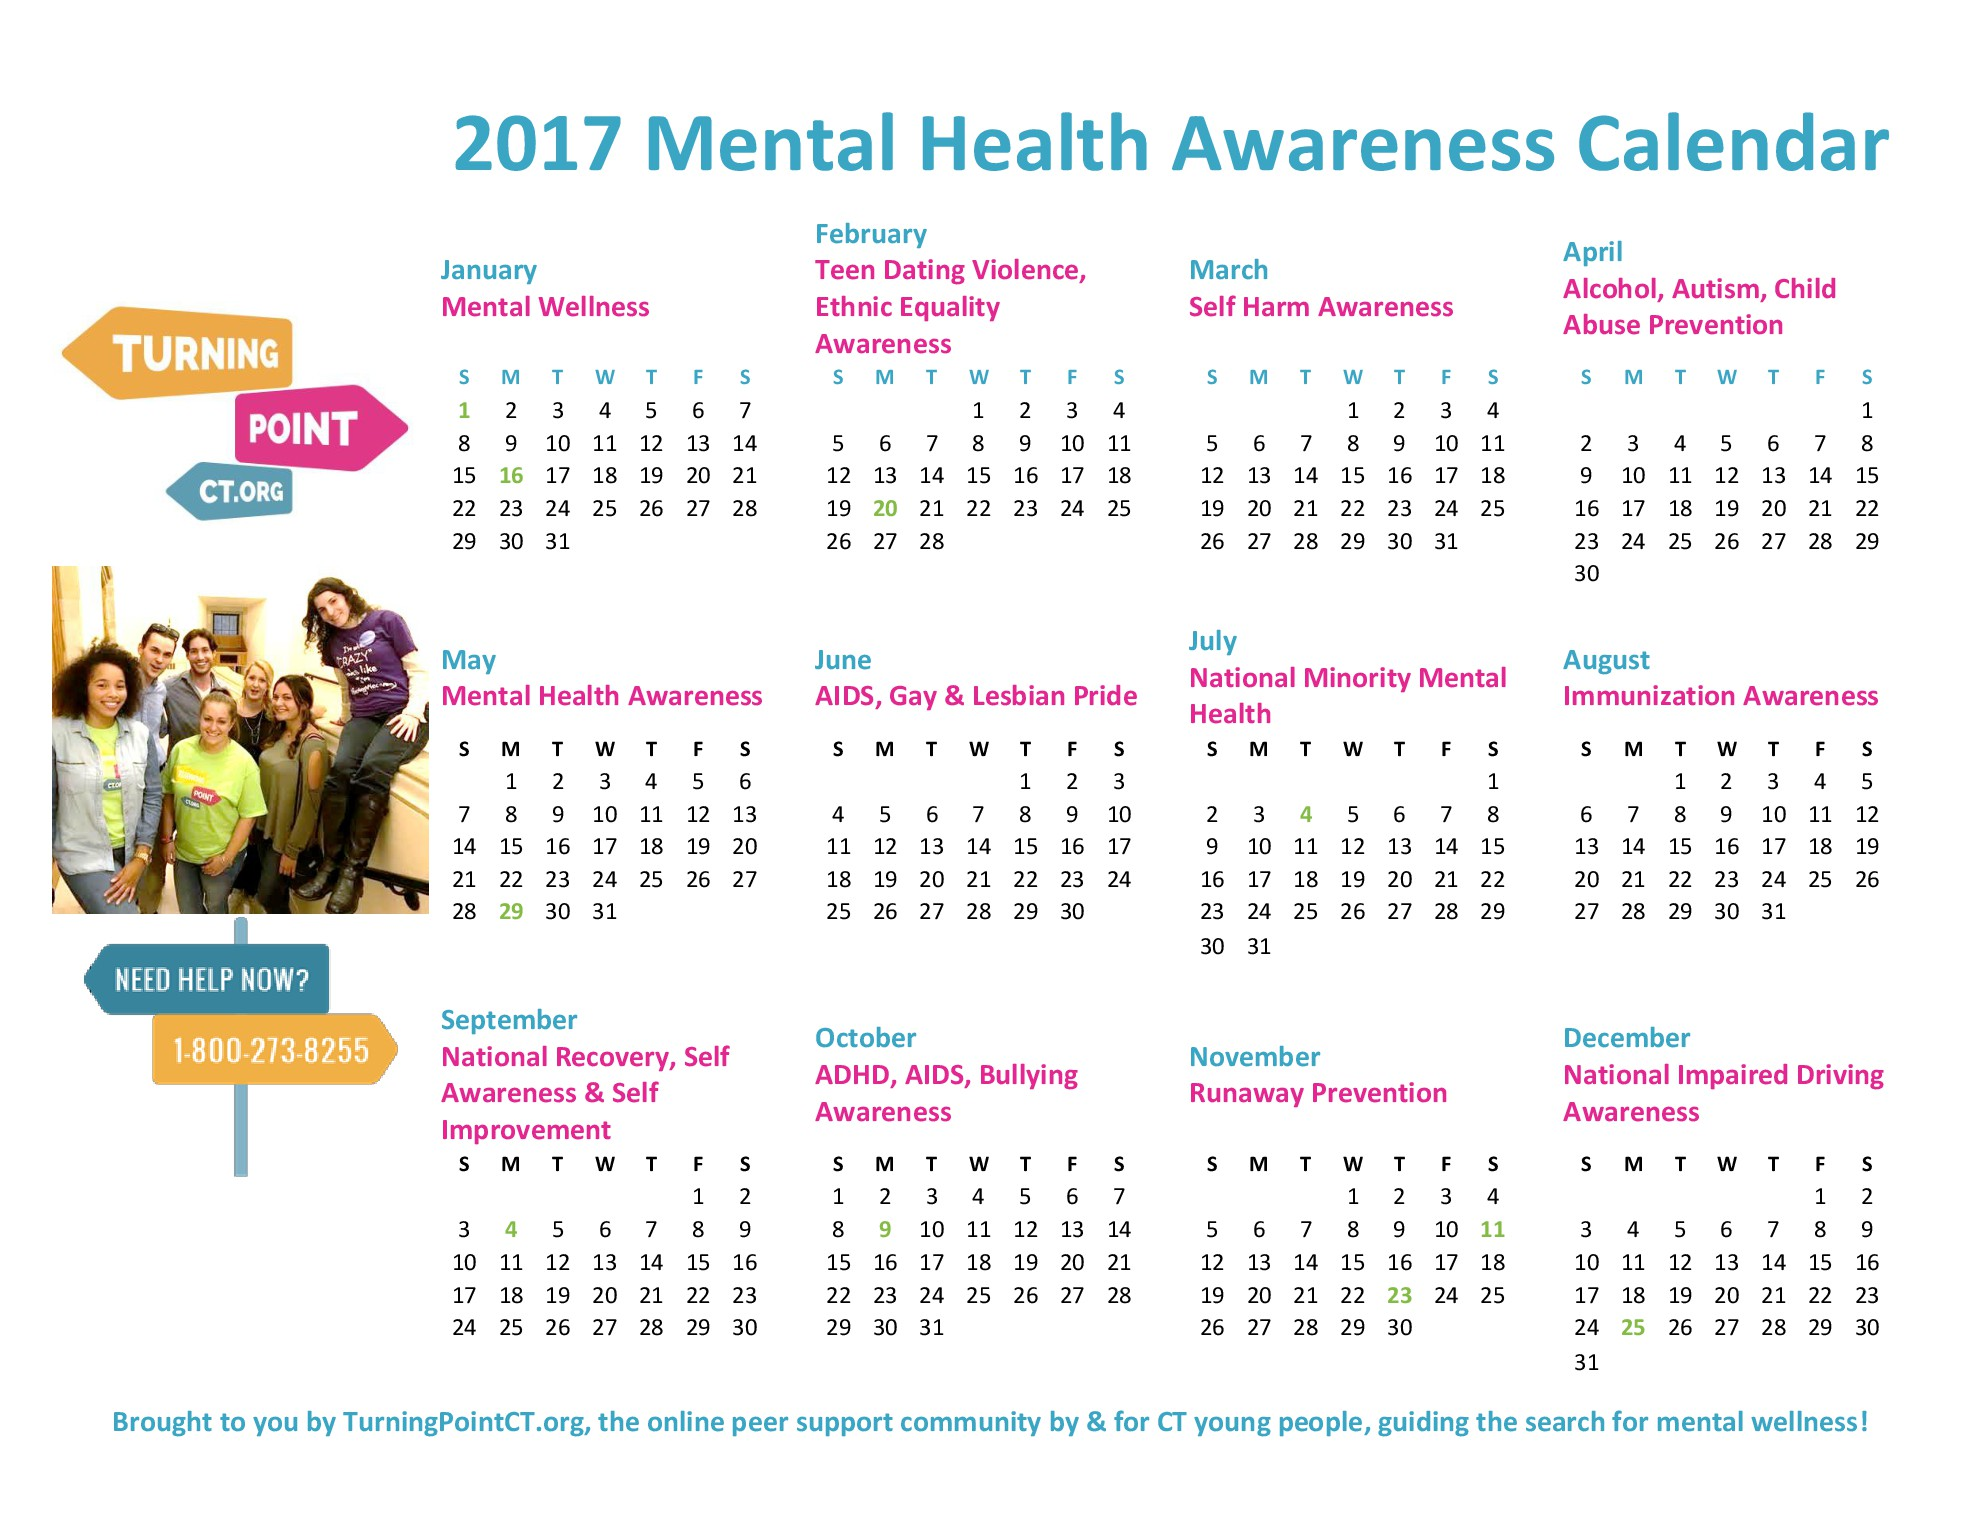 2017 TurningPointCT Mental Health Awareness Calendar